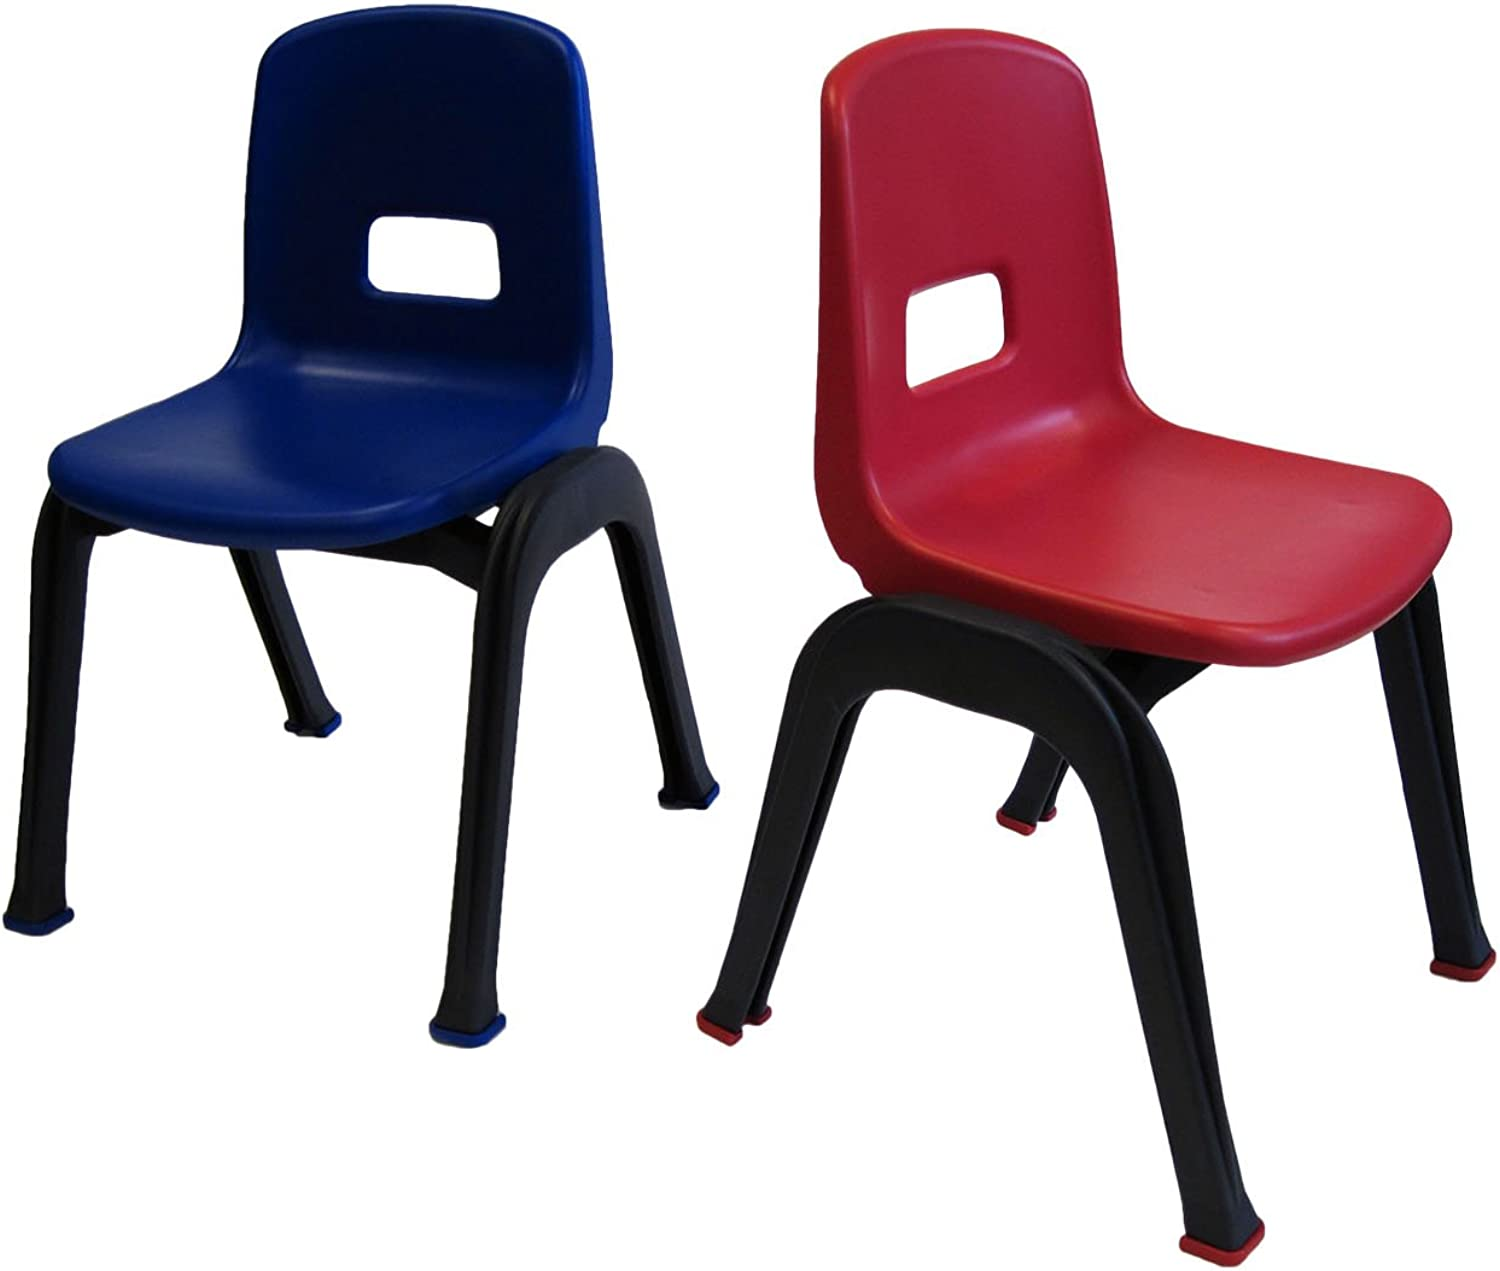 Set of 2 Stackable School Chairs, 12  High Seat, Red & bluee, Heavy Duty